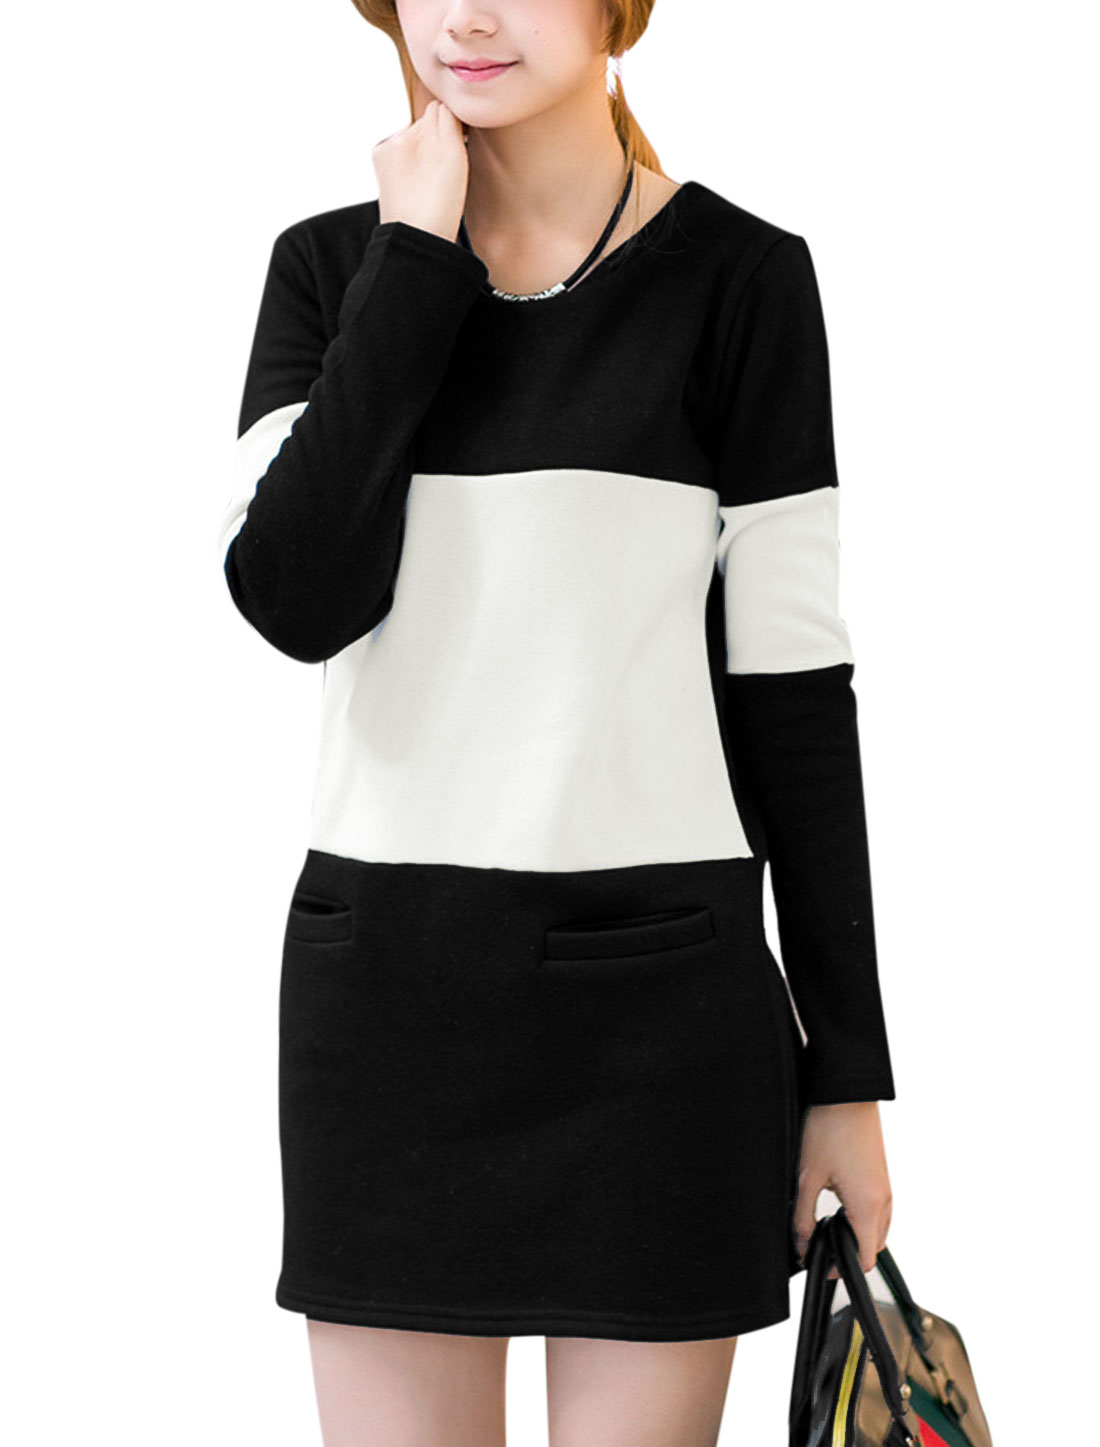 Lady Long Sleeve Colorblock Fleece Inside Soft Dress White Black S